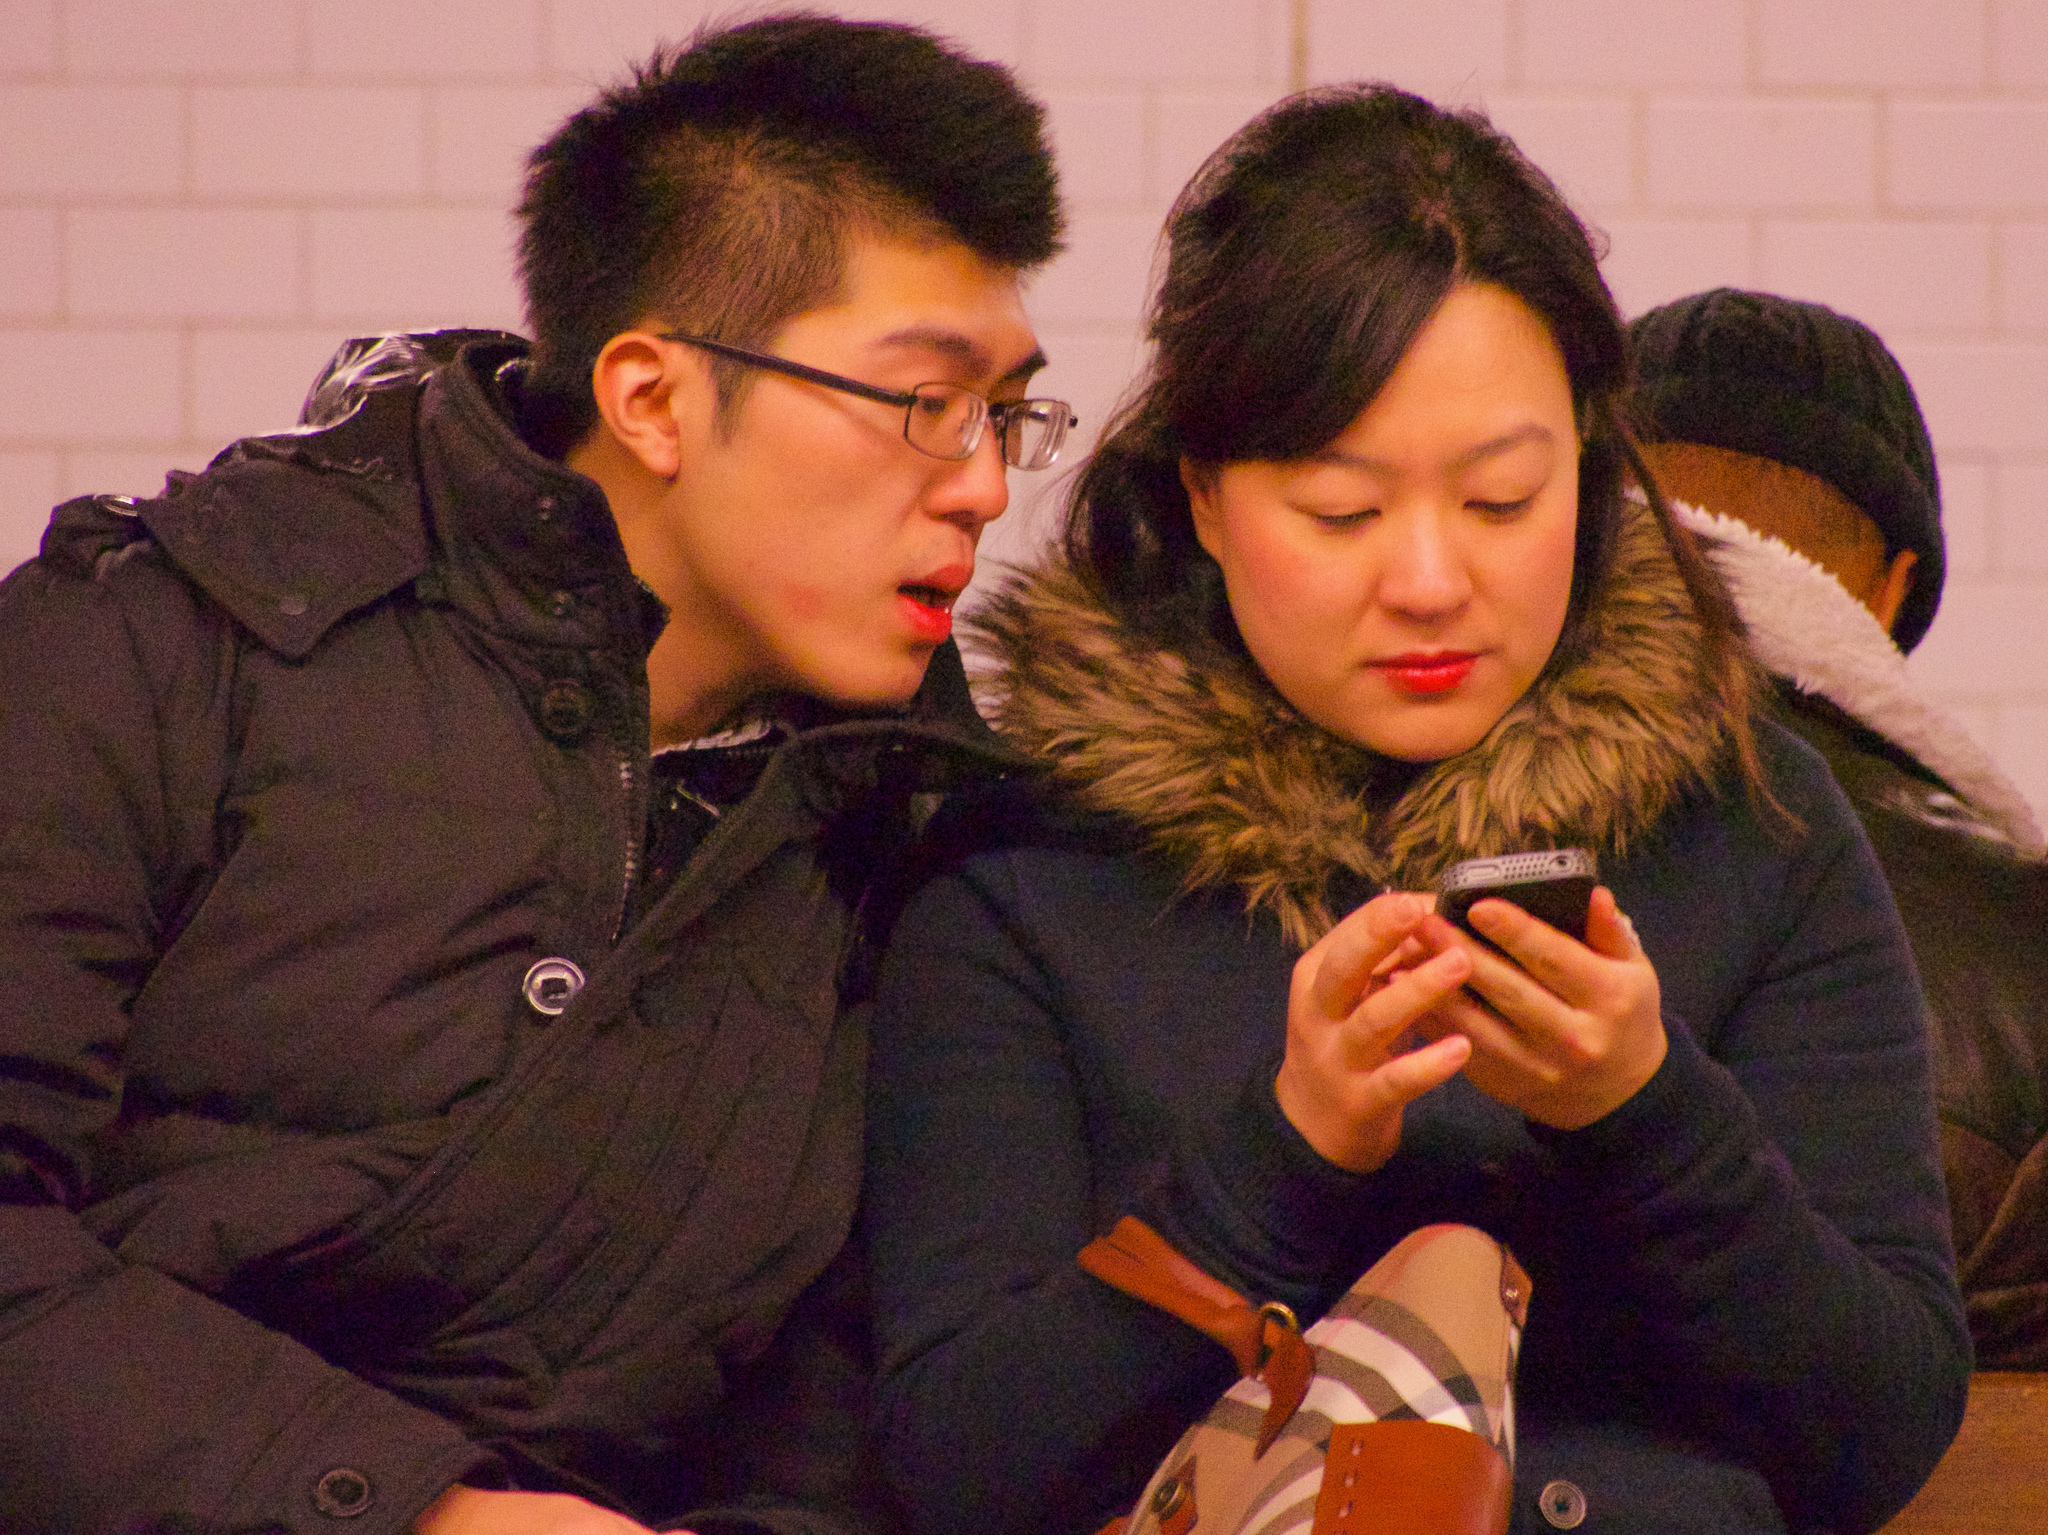 Smartphones in public, transgressing personal space. Photo by Ed Yourdon.